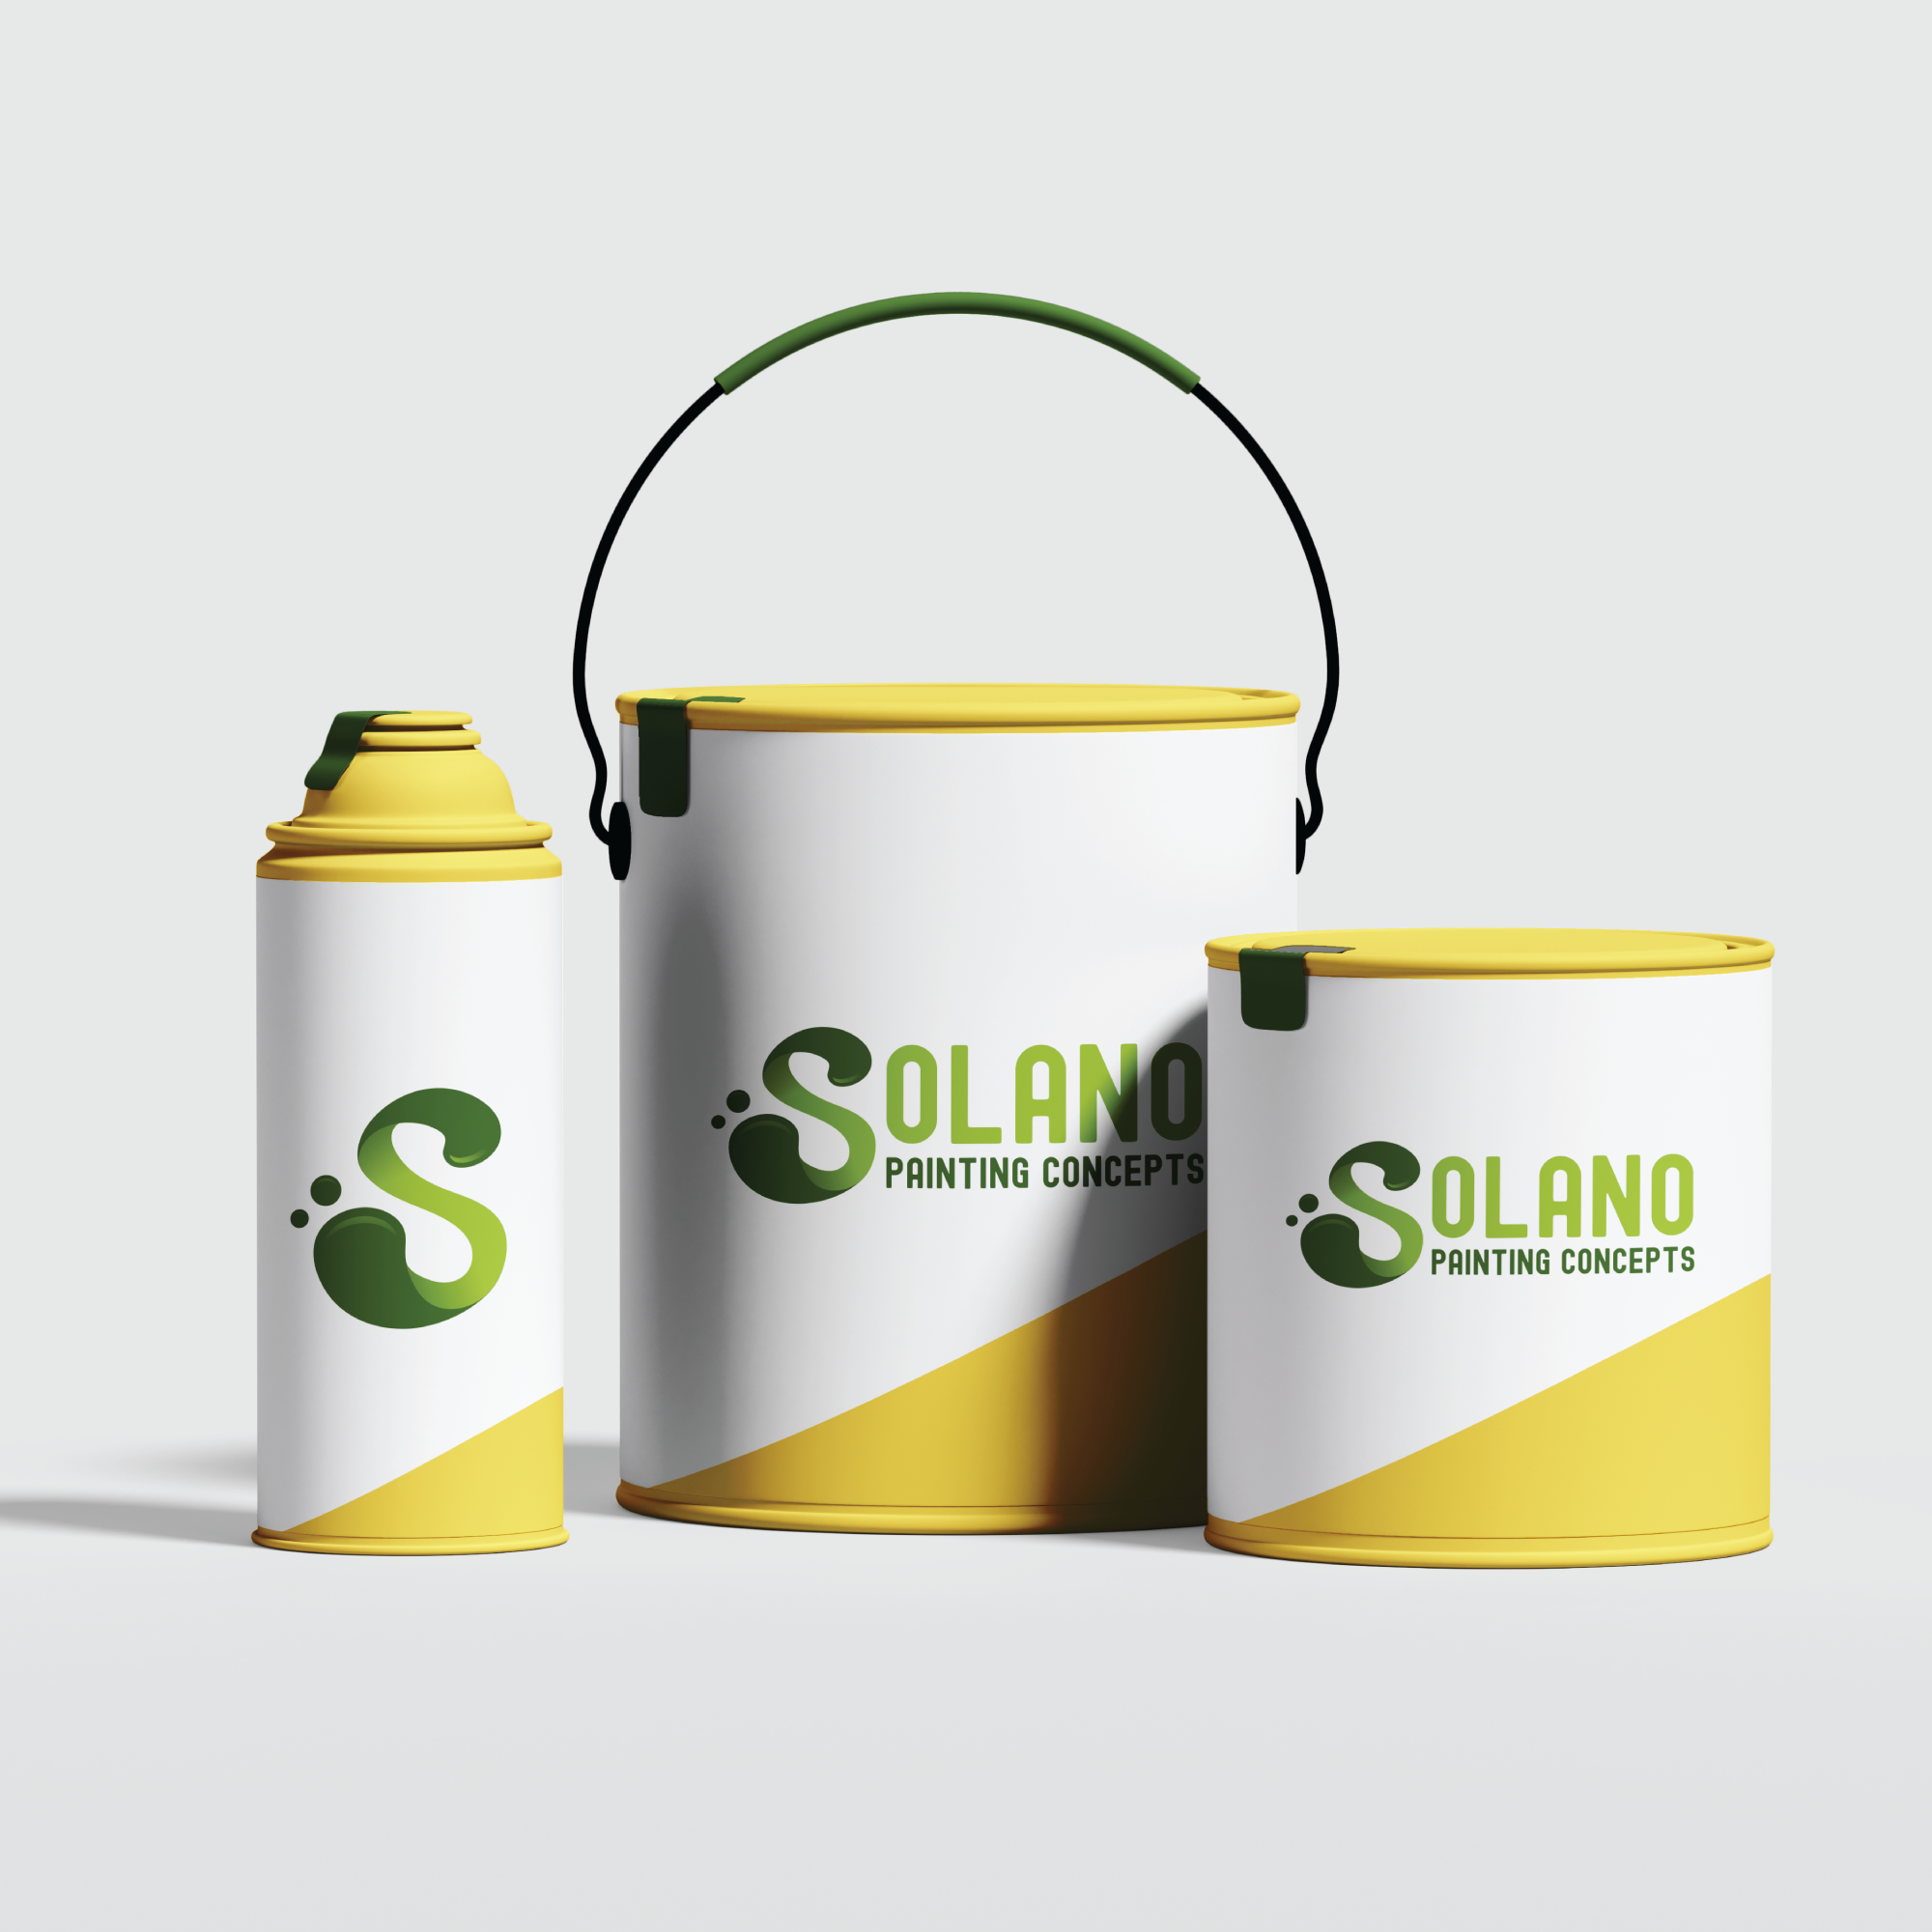 paint cans branding mock up for professional painter brand on top 10 interior paint brands id=62701